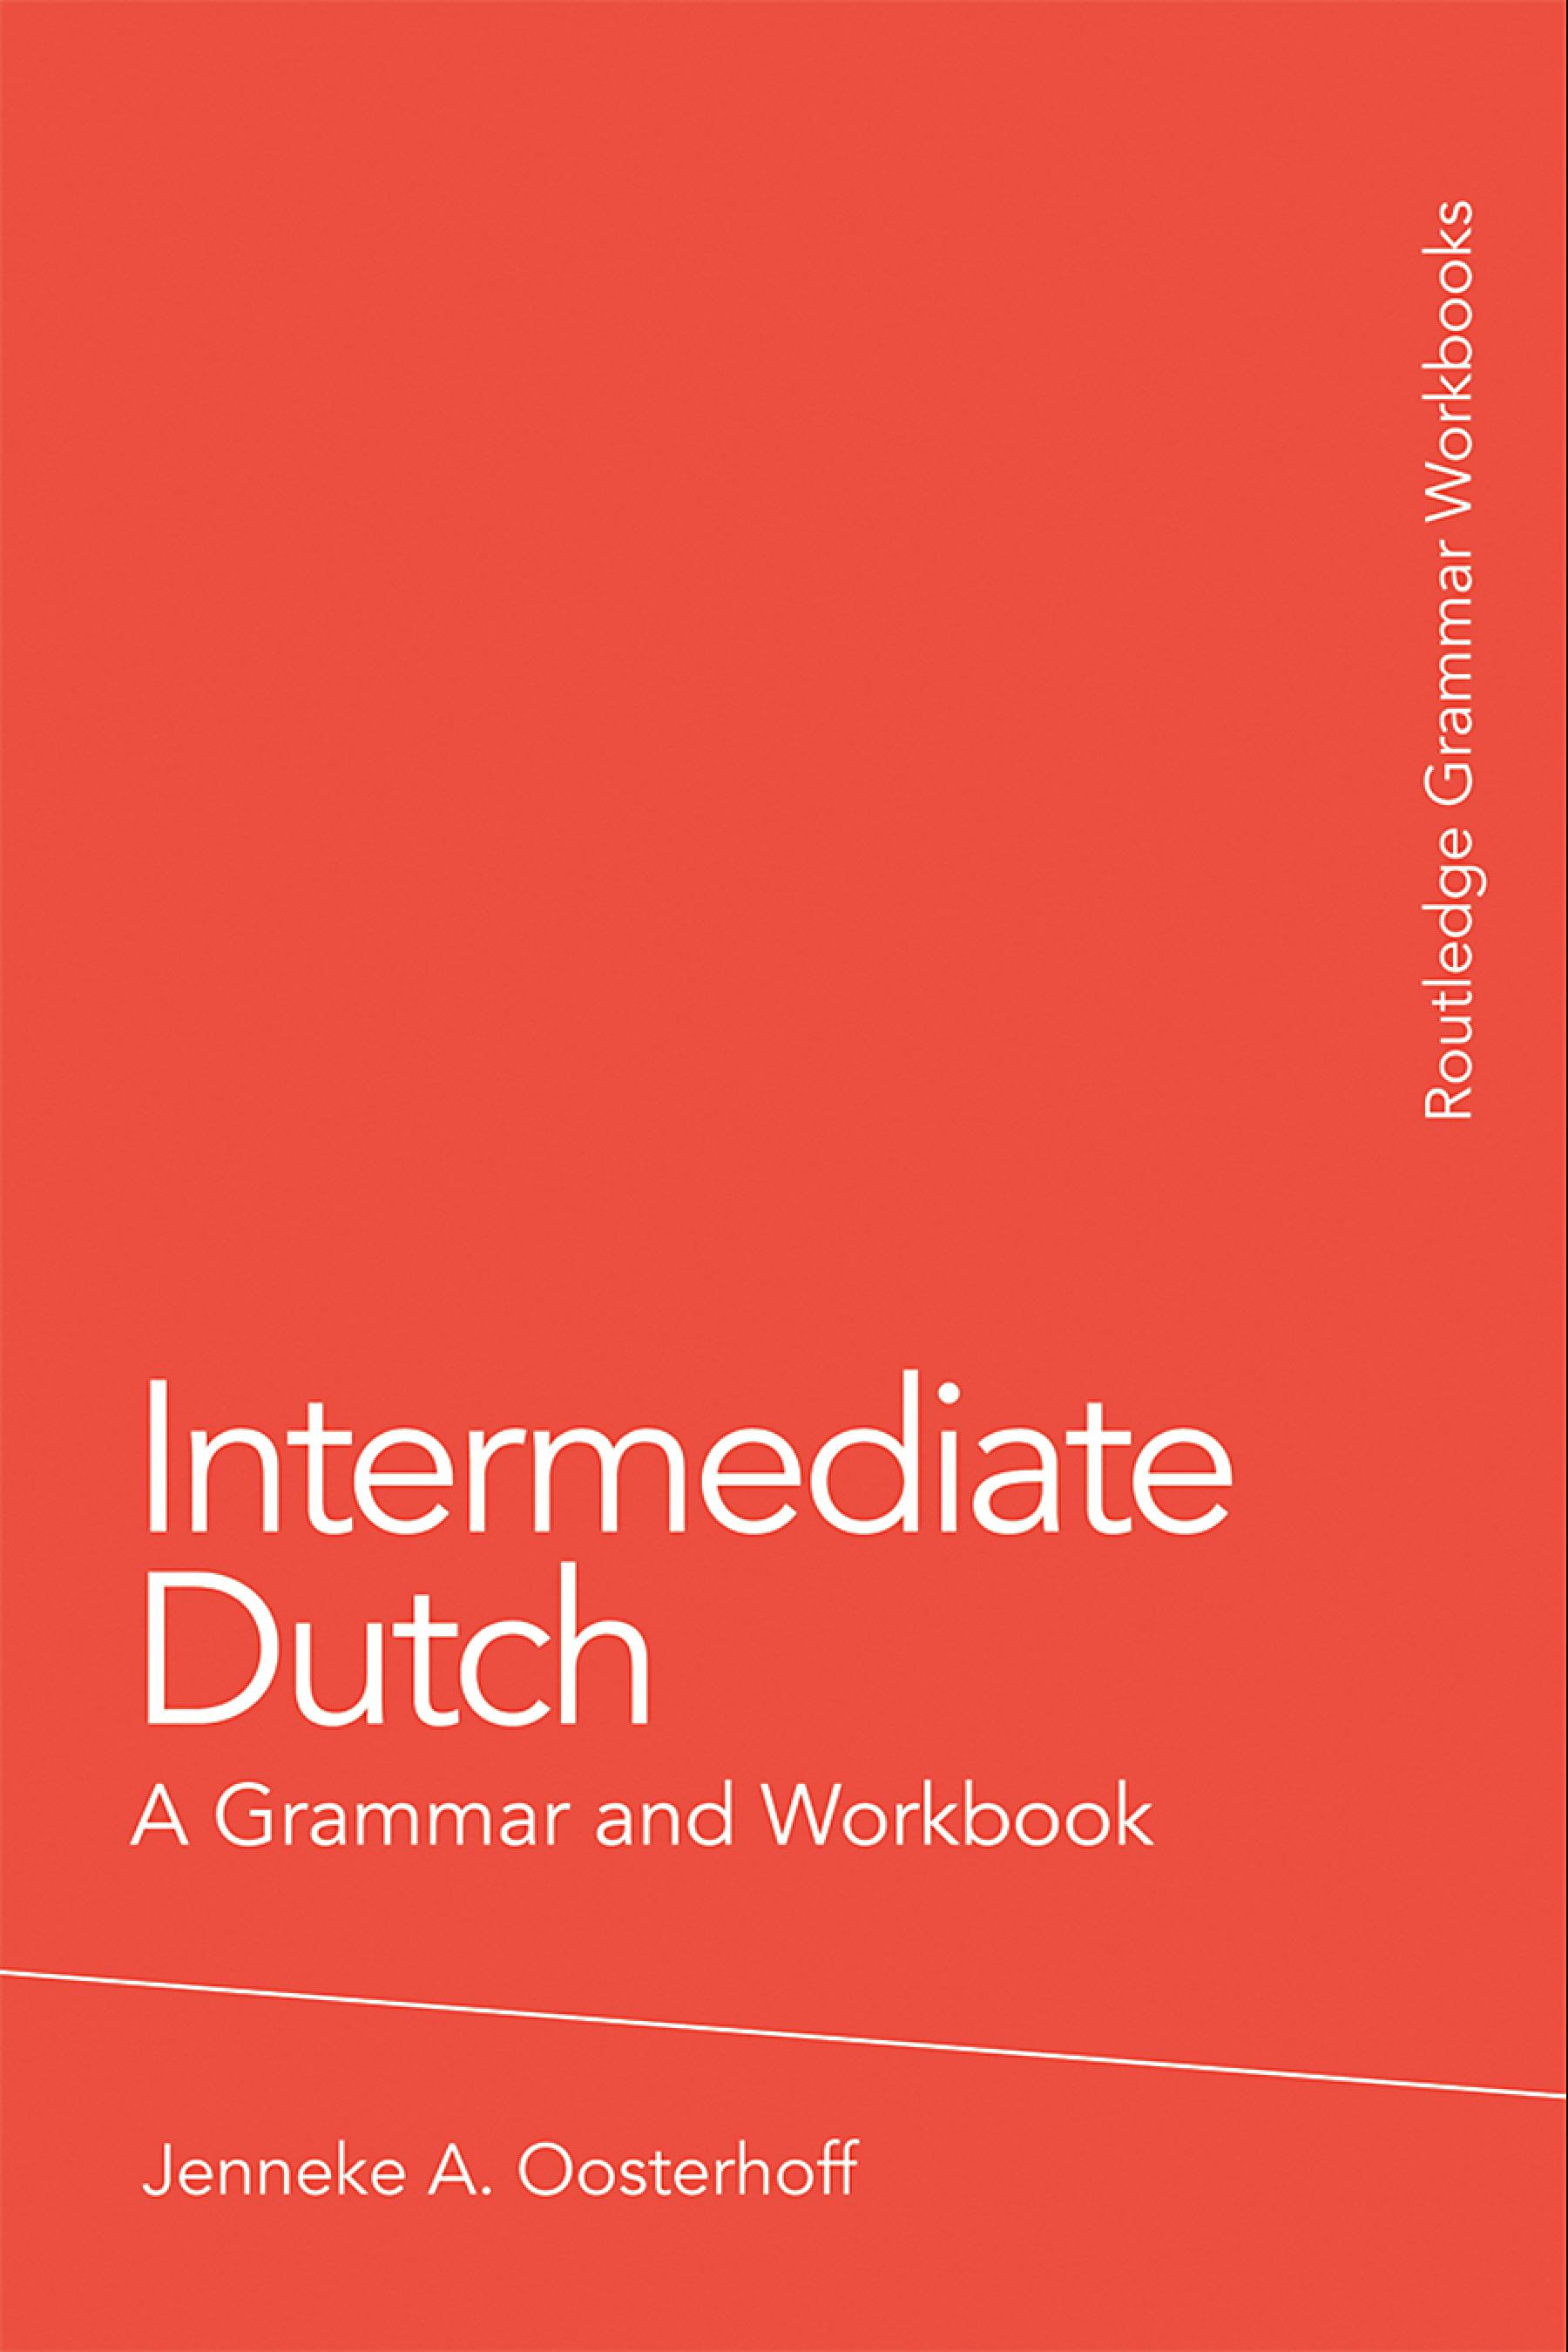 Intermediate Dutch: A Grammar and Workbook